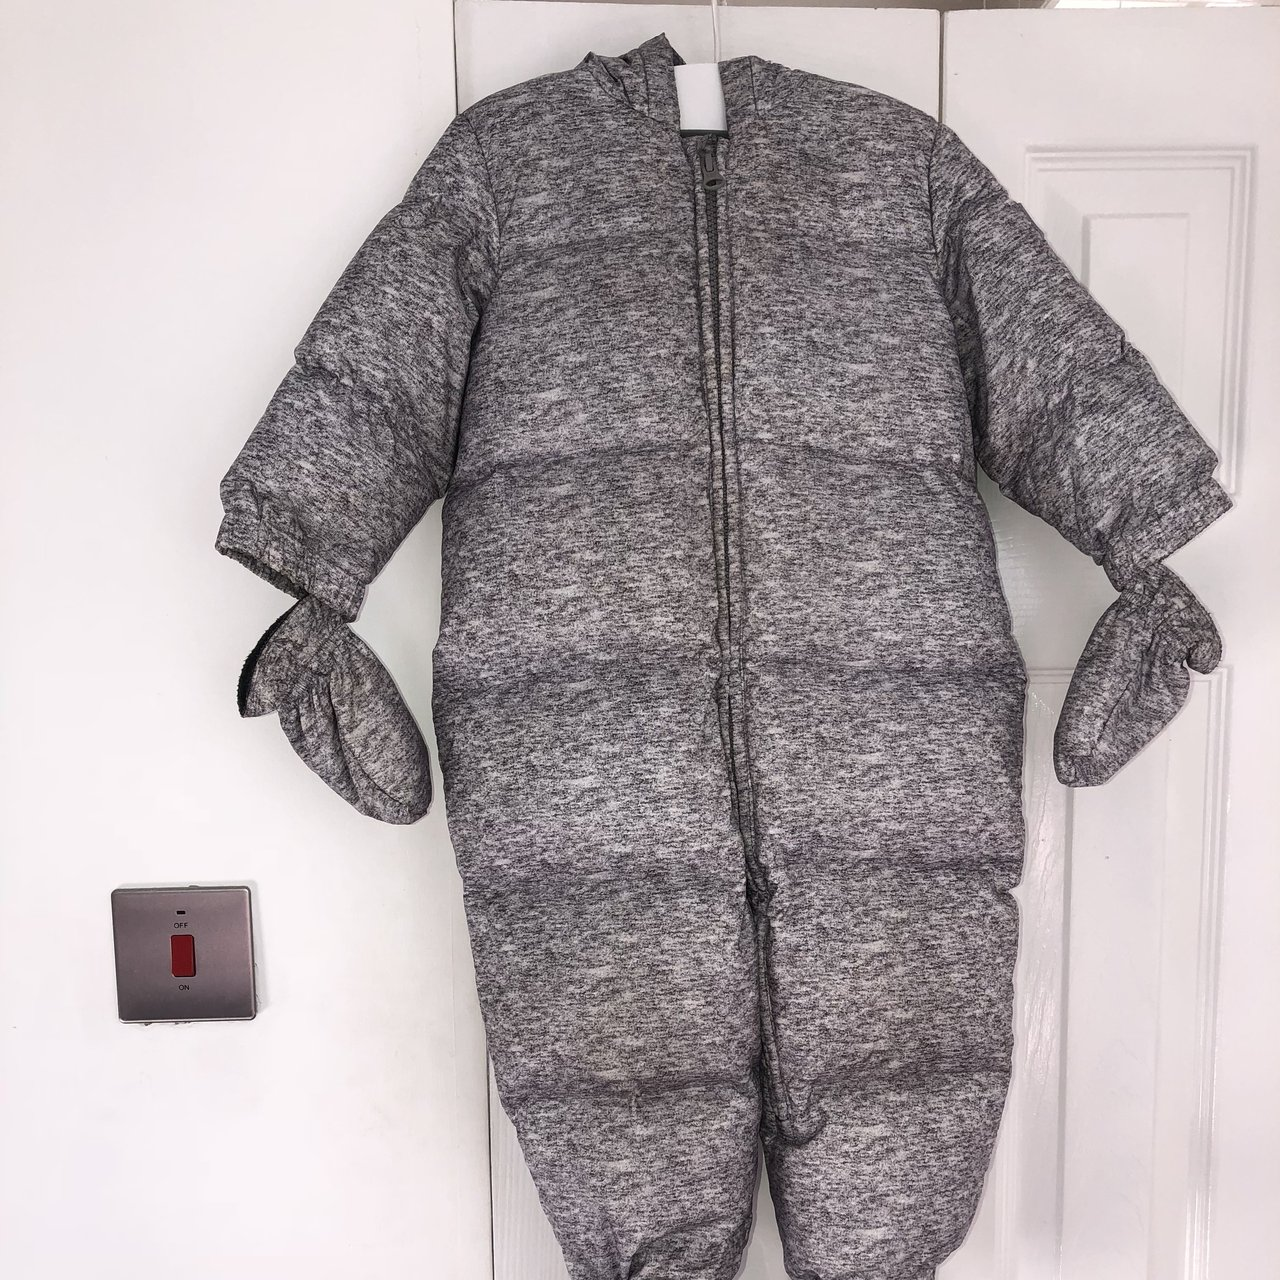 428ddbc95 Baby Gap unisex down feather snowsuit 18-24 months Perfect - Depop